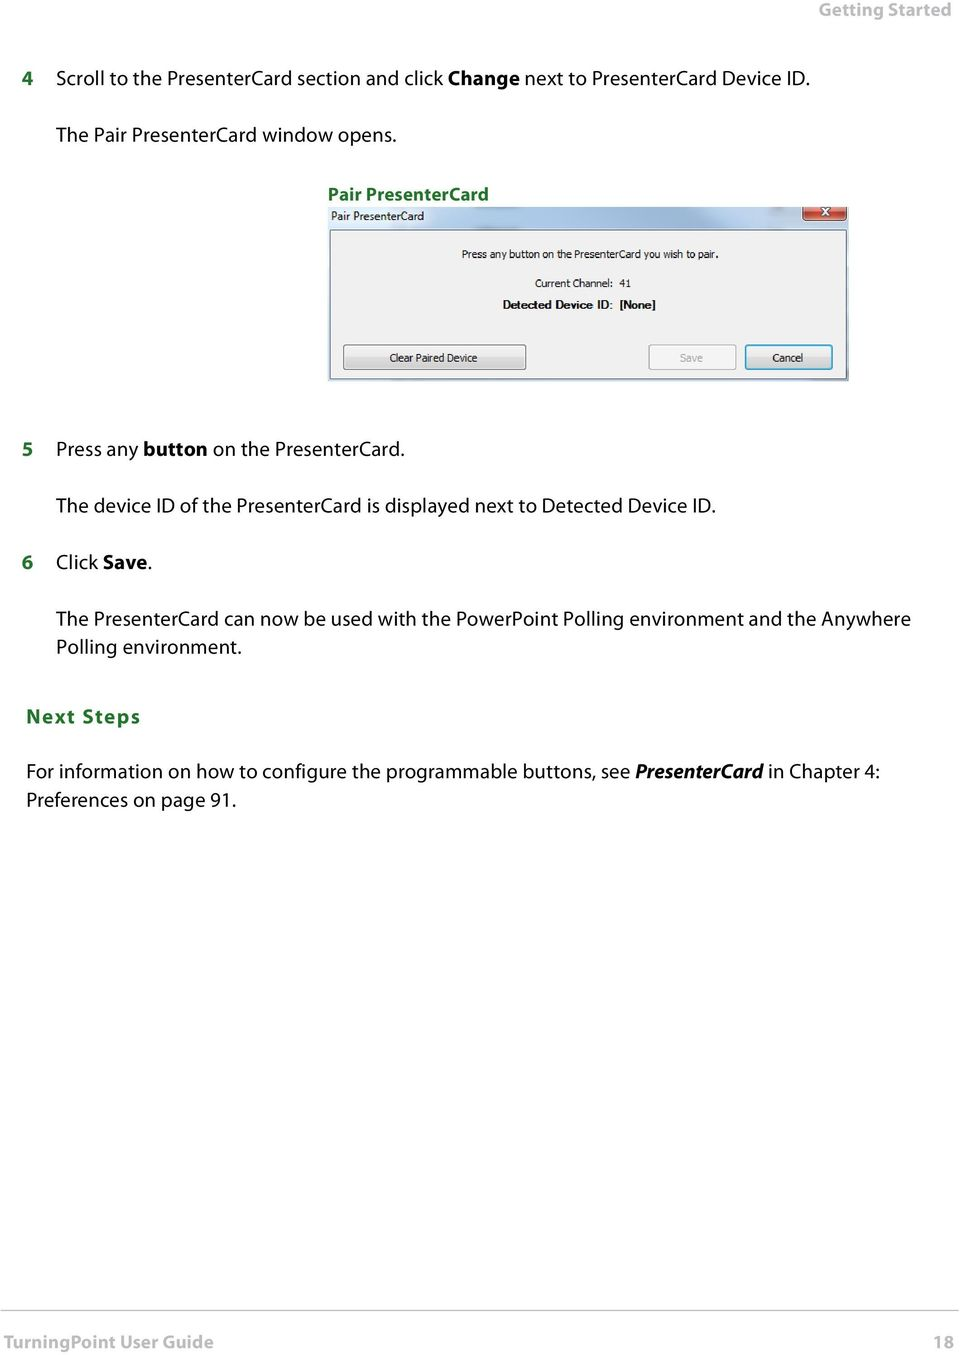 6 Click Save. The PresenterCard can now be used with the PowerPoint Polling environment and the Anywhere Polling environment.